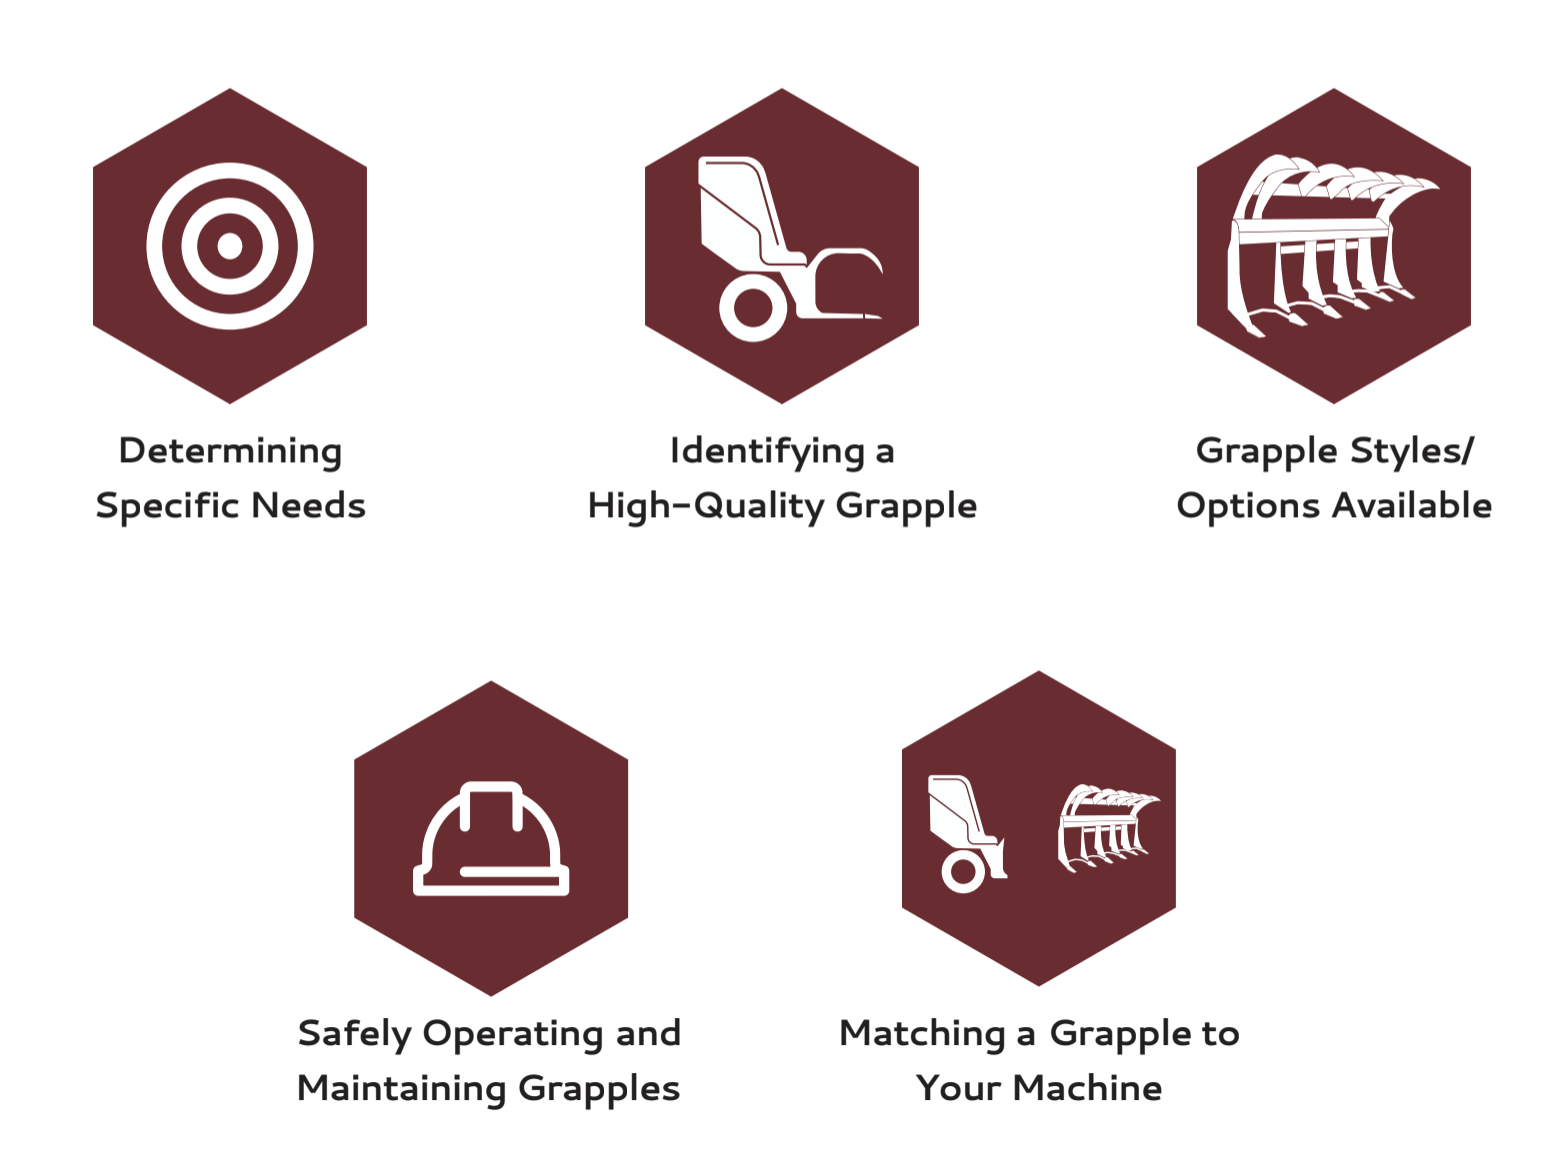 Determining Specific Needs, Identifying a High-Quality Grapple, Grapple Styles/Options Available, Safely Operating and Maintaining Grapples, Matching a Grapple to Your Machine